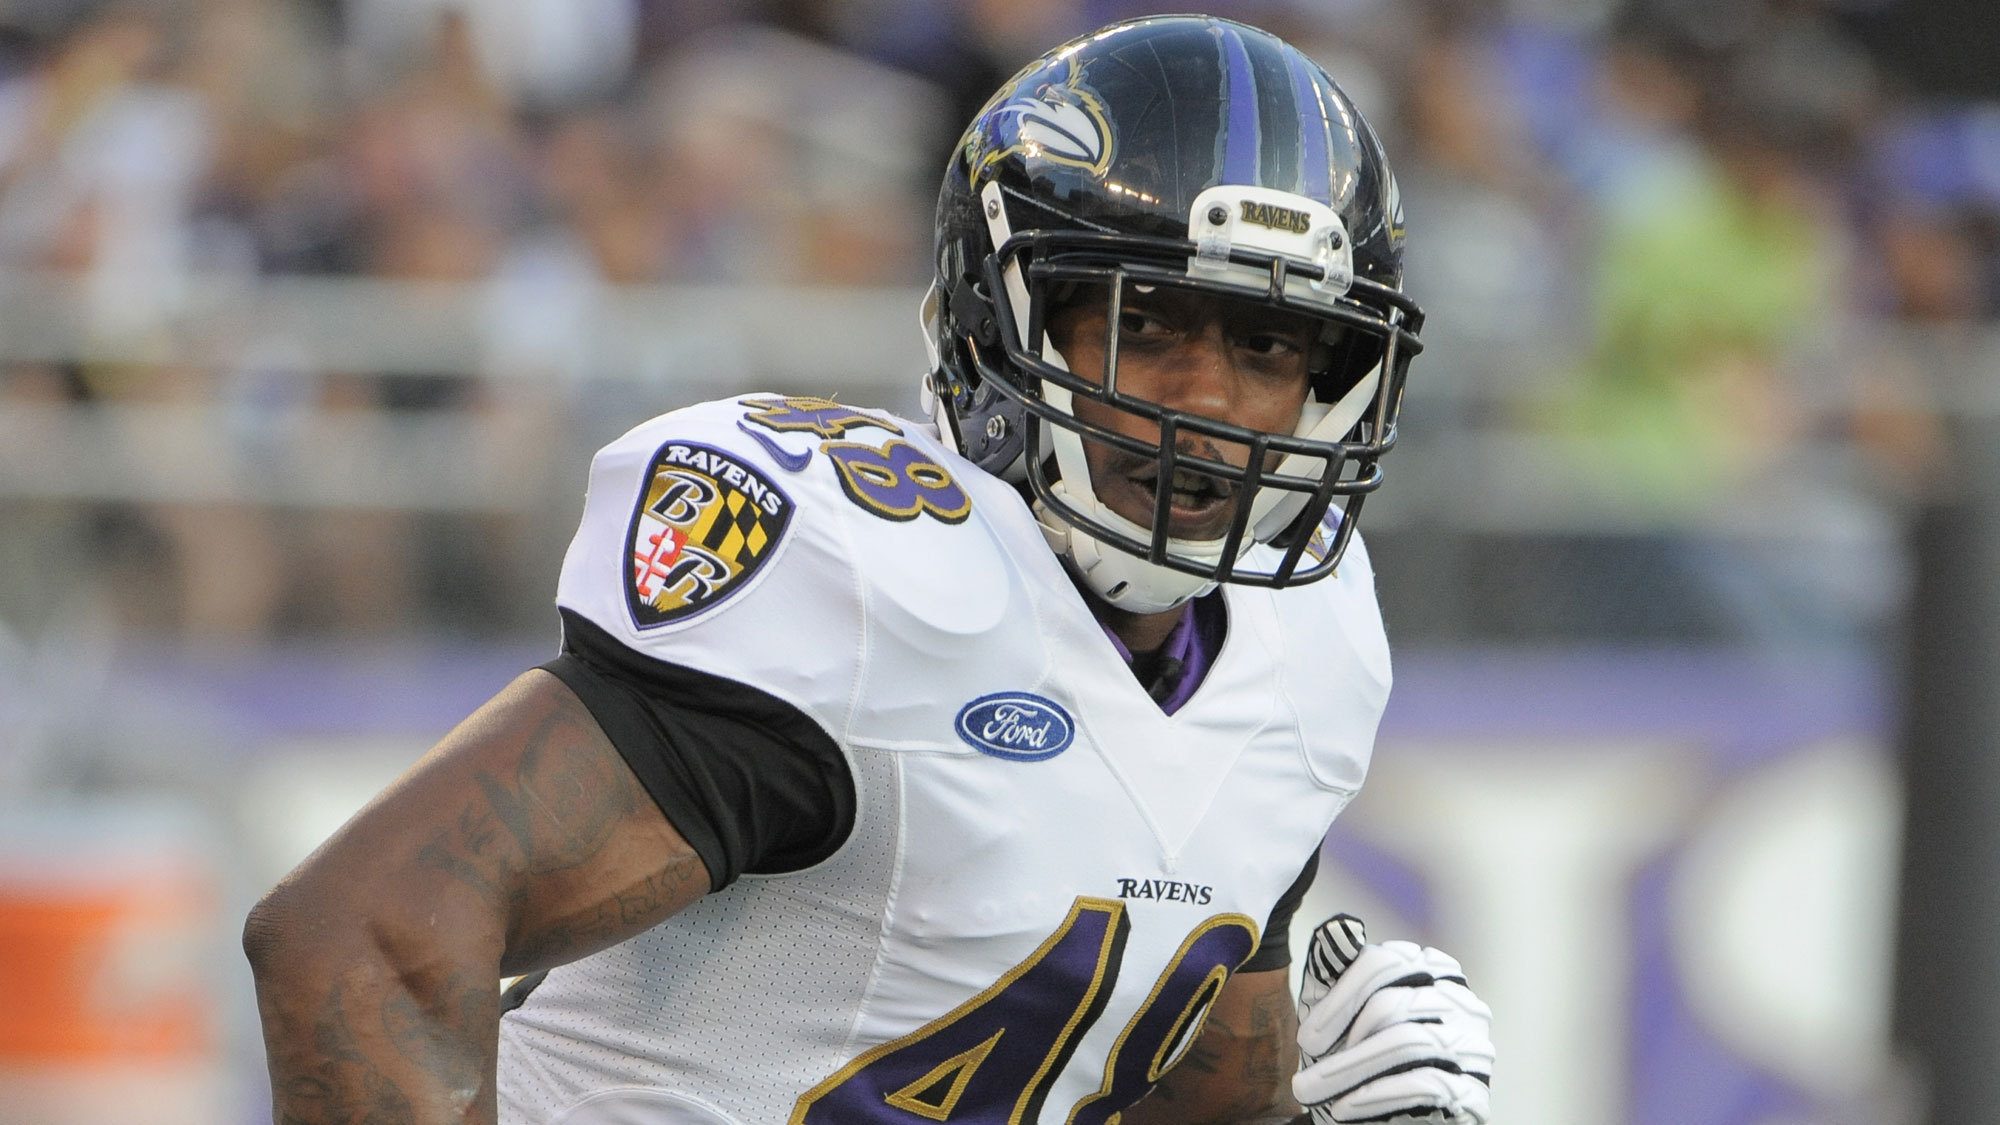 Baltimore Ravens Training Camp bet at home Partyservice bet at home Kontonummer 2015